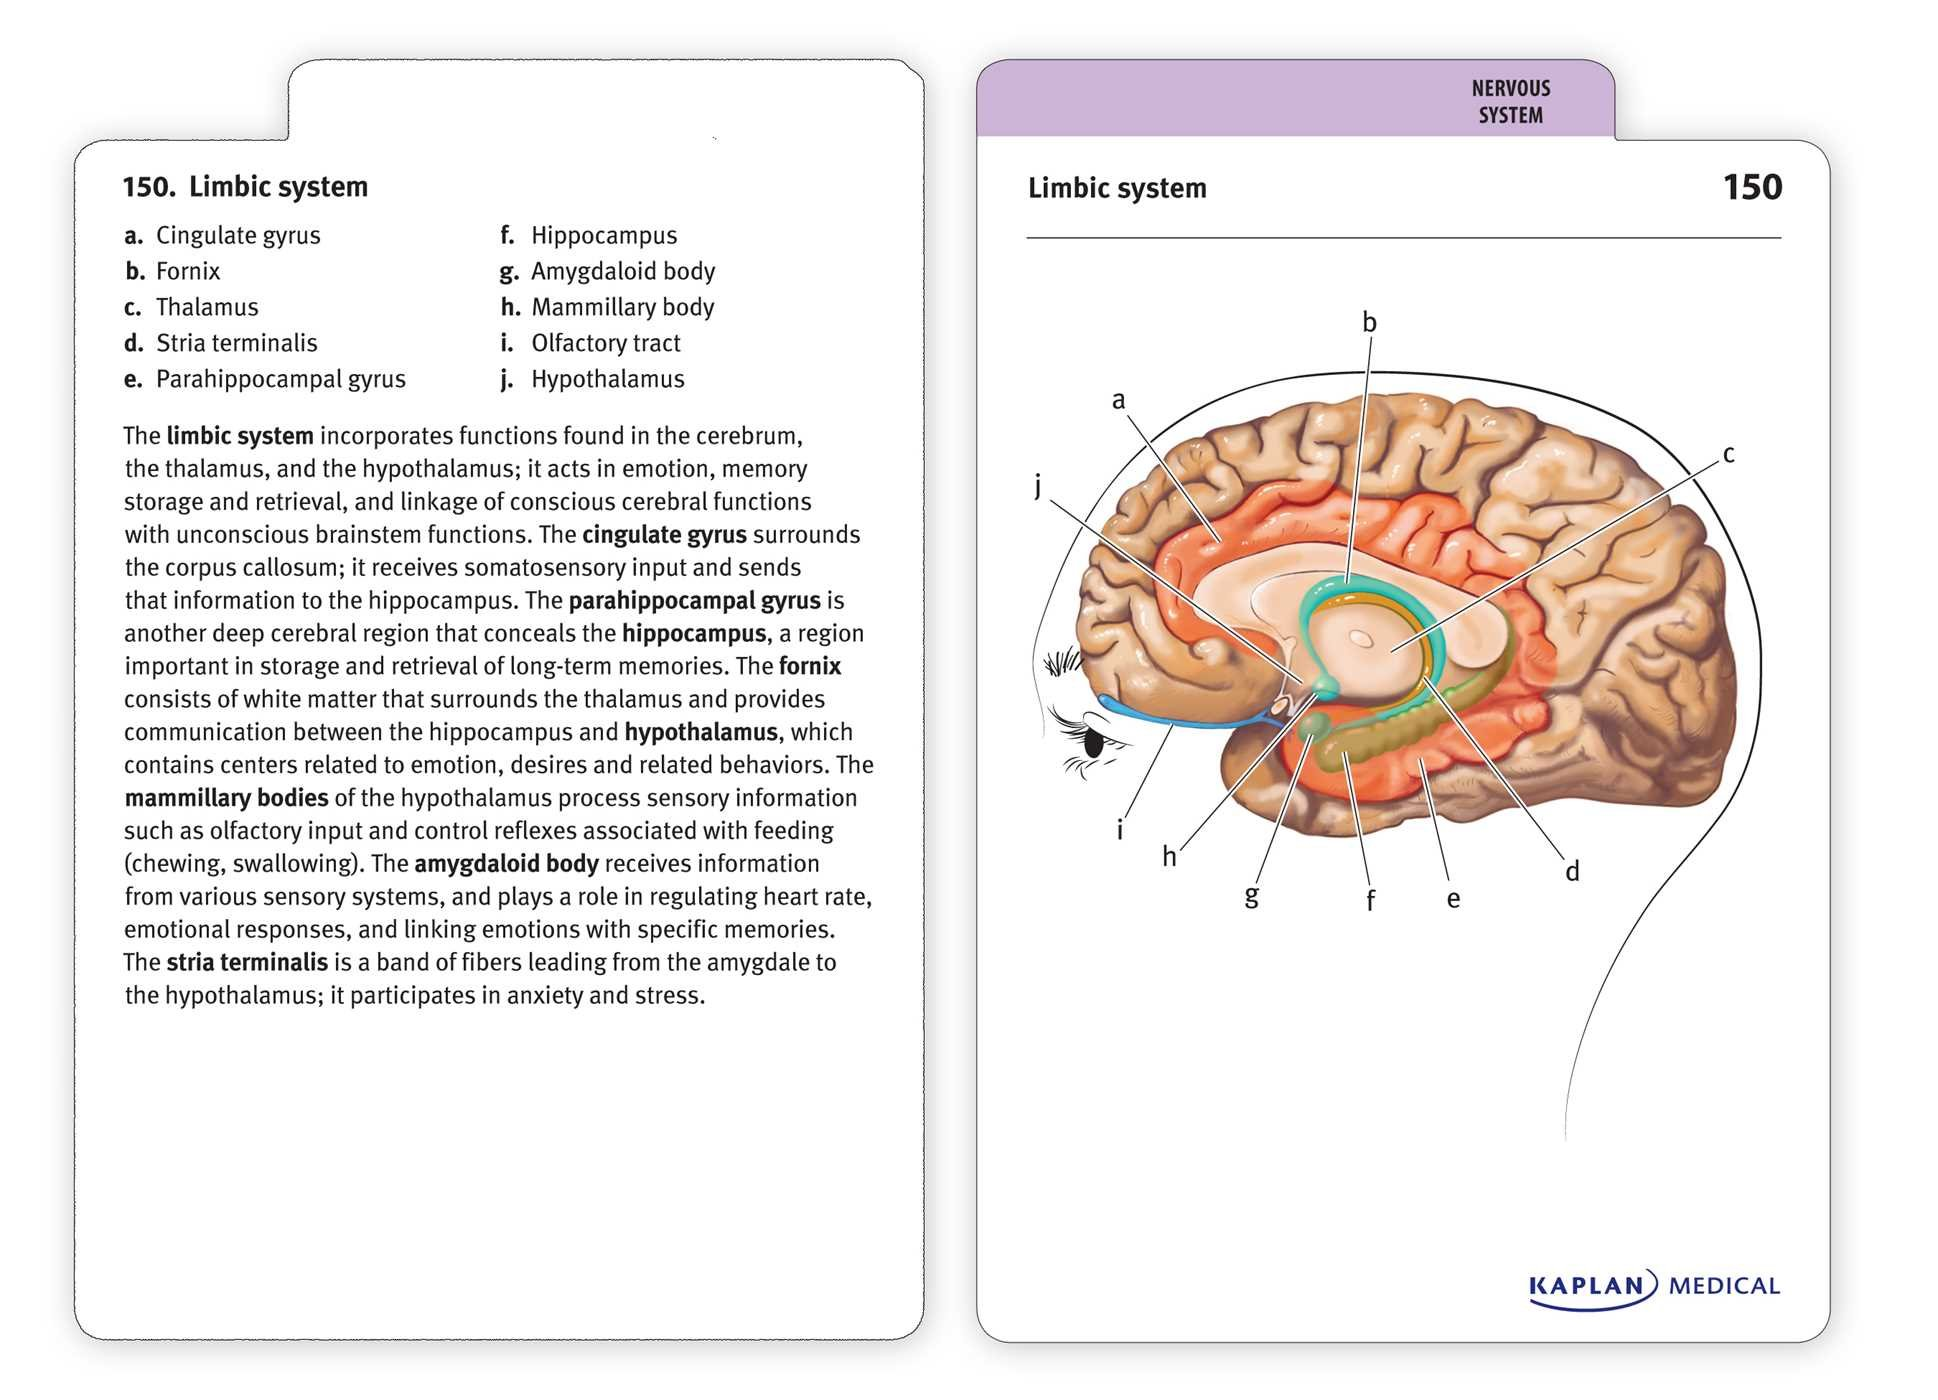 Anatomy Flashcards: Amazon.co.uk: Joanne Tillotson, Sonia Reichert ...